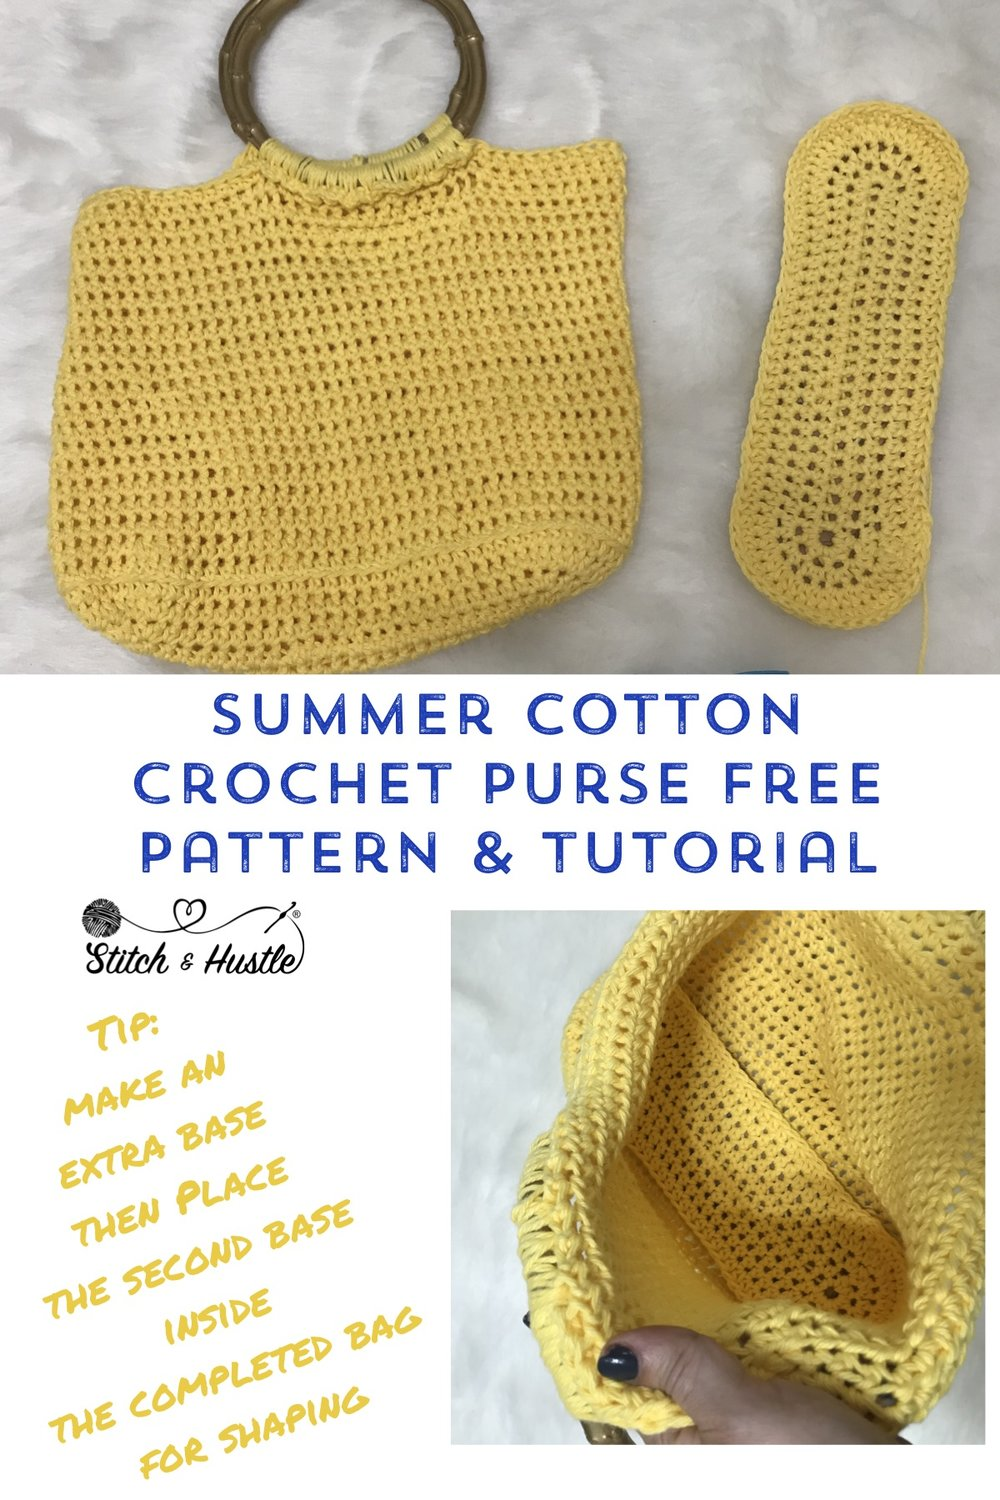 Mini Tote Bag Free Crochet Pattern Stitch Hustle